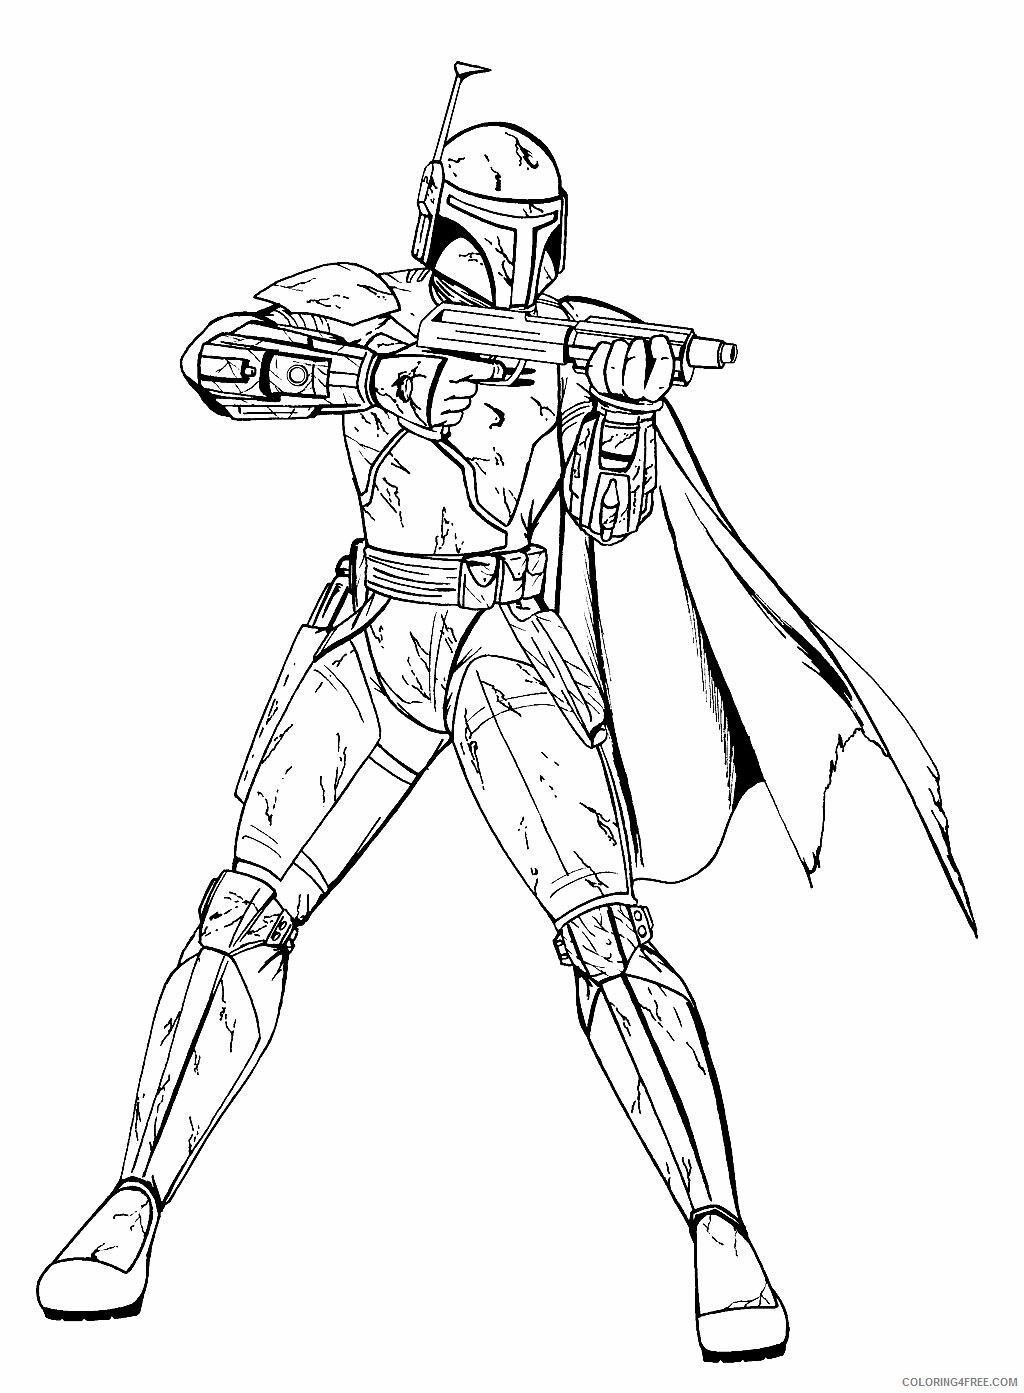 Star Wars Coloring Pages TV Film Star Wars Free Printable 2020 08032 Coloring4free